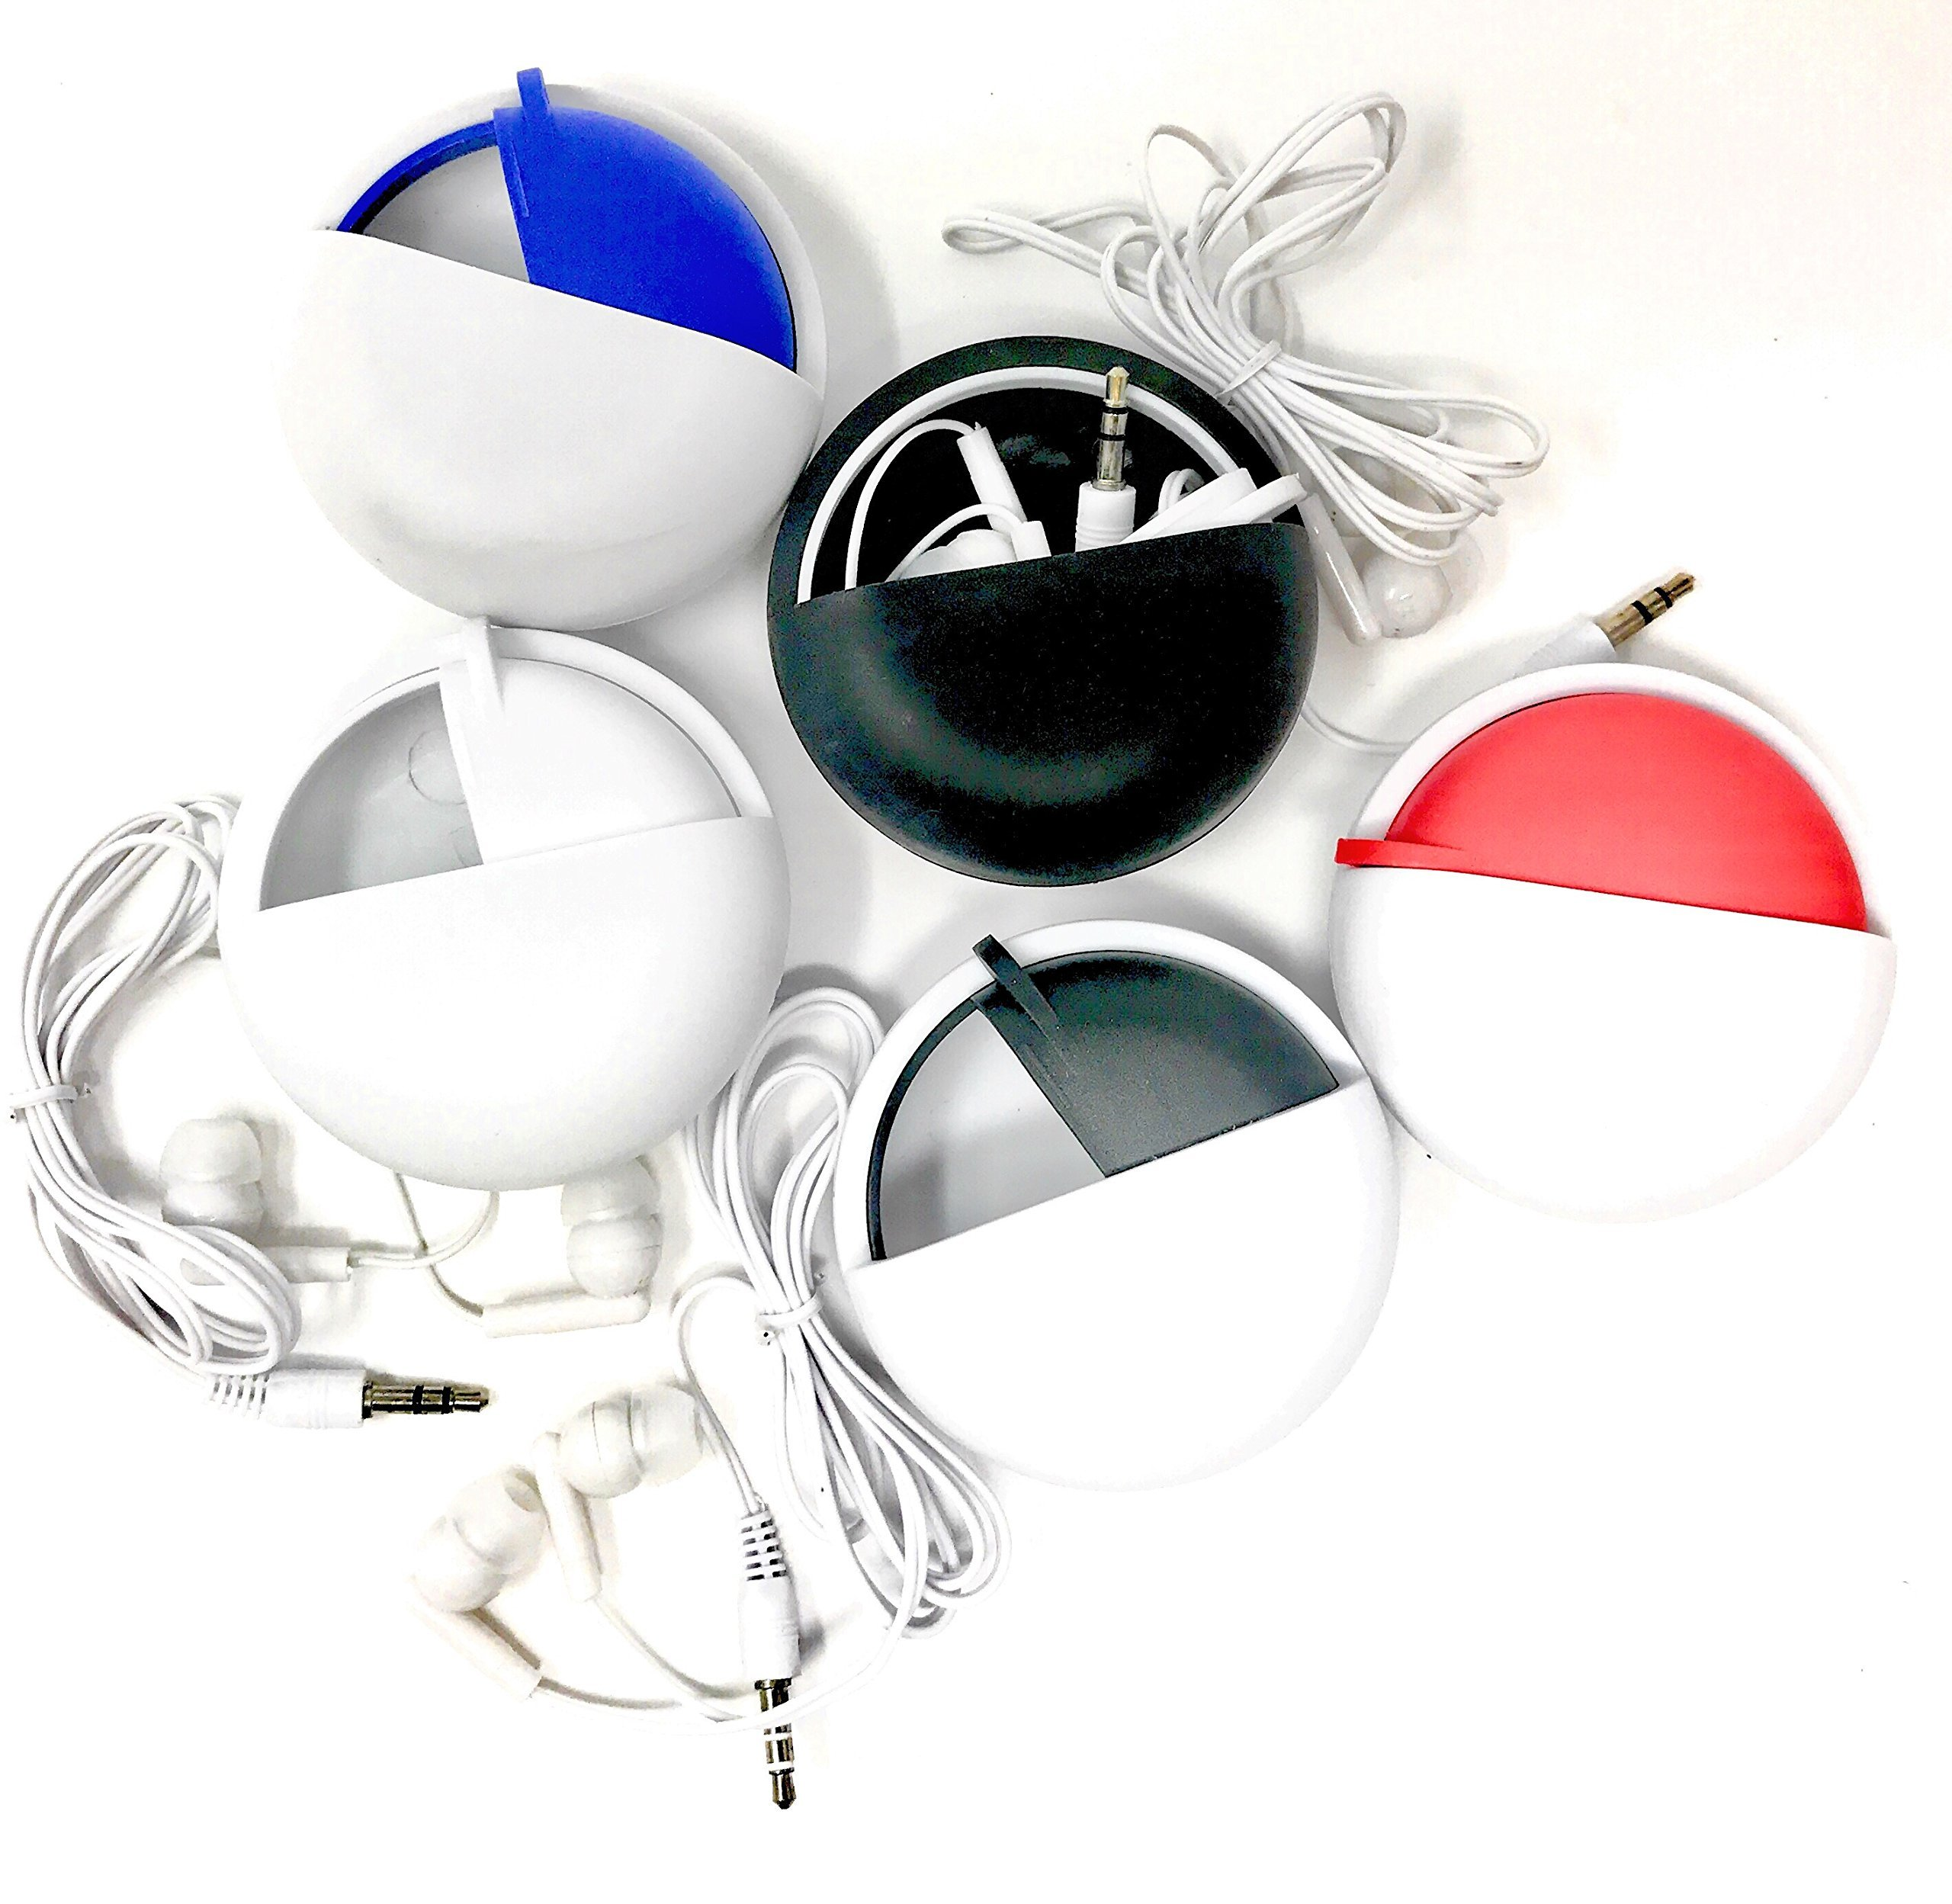 5 Earbud Sets with Assorted Color Travel Cases - Bulk Assortment Pack